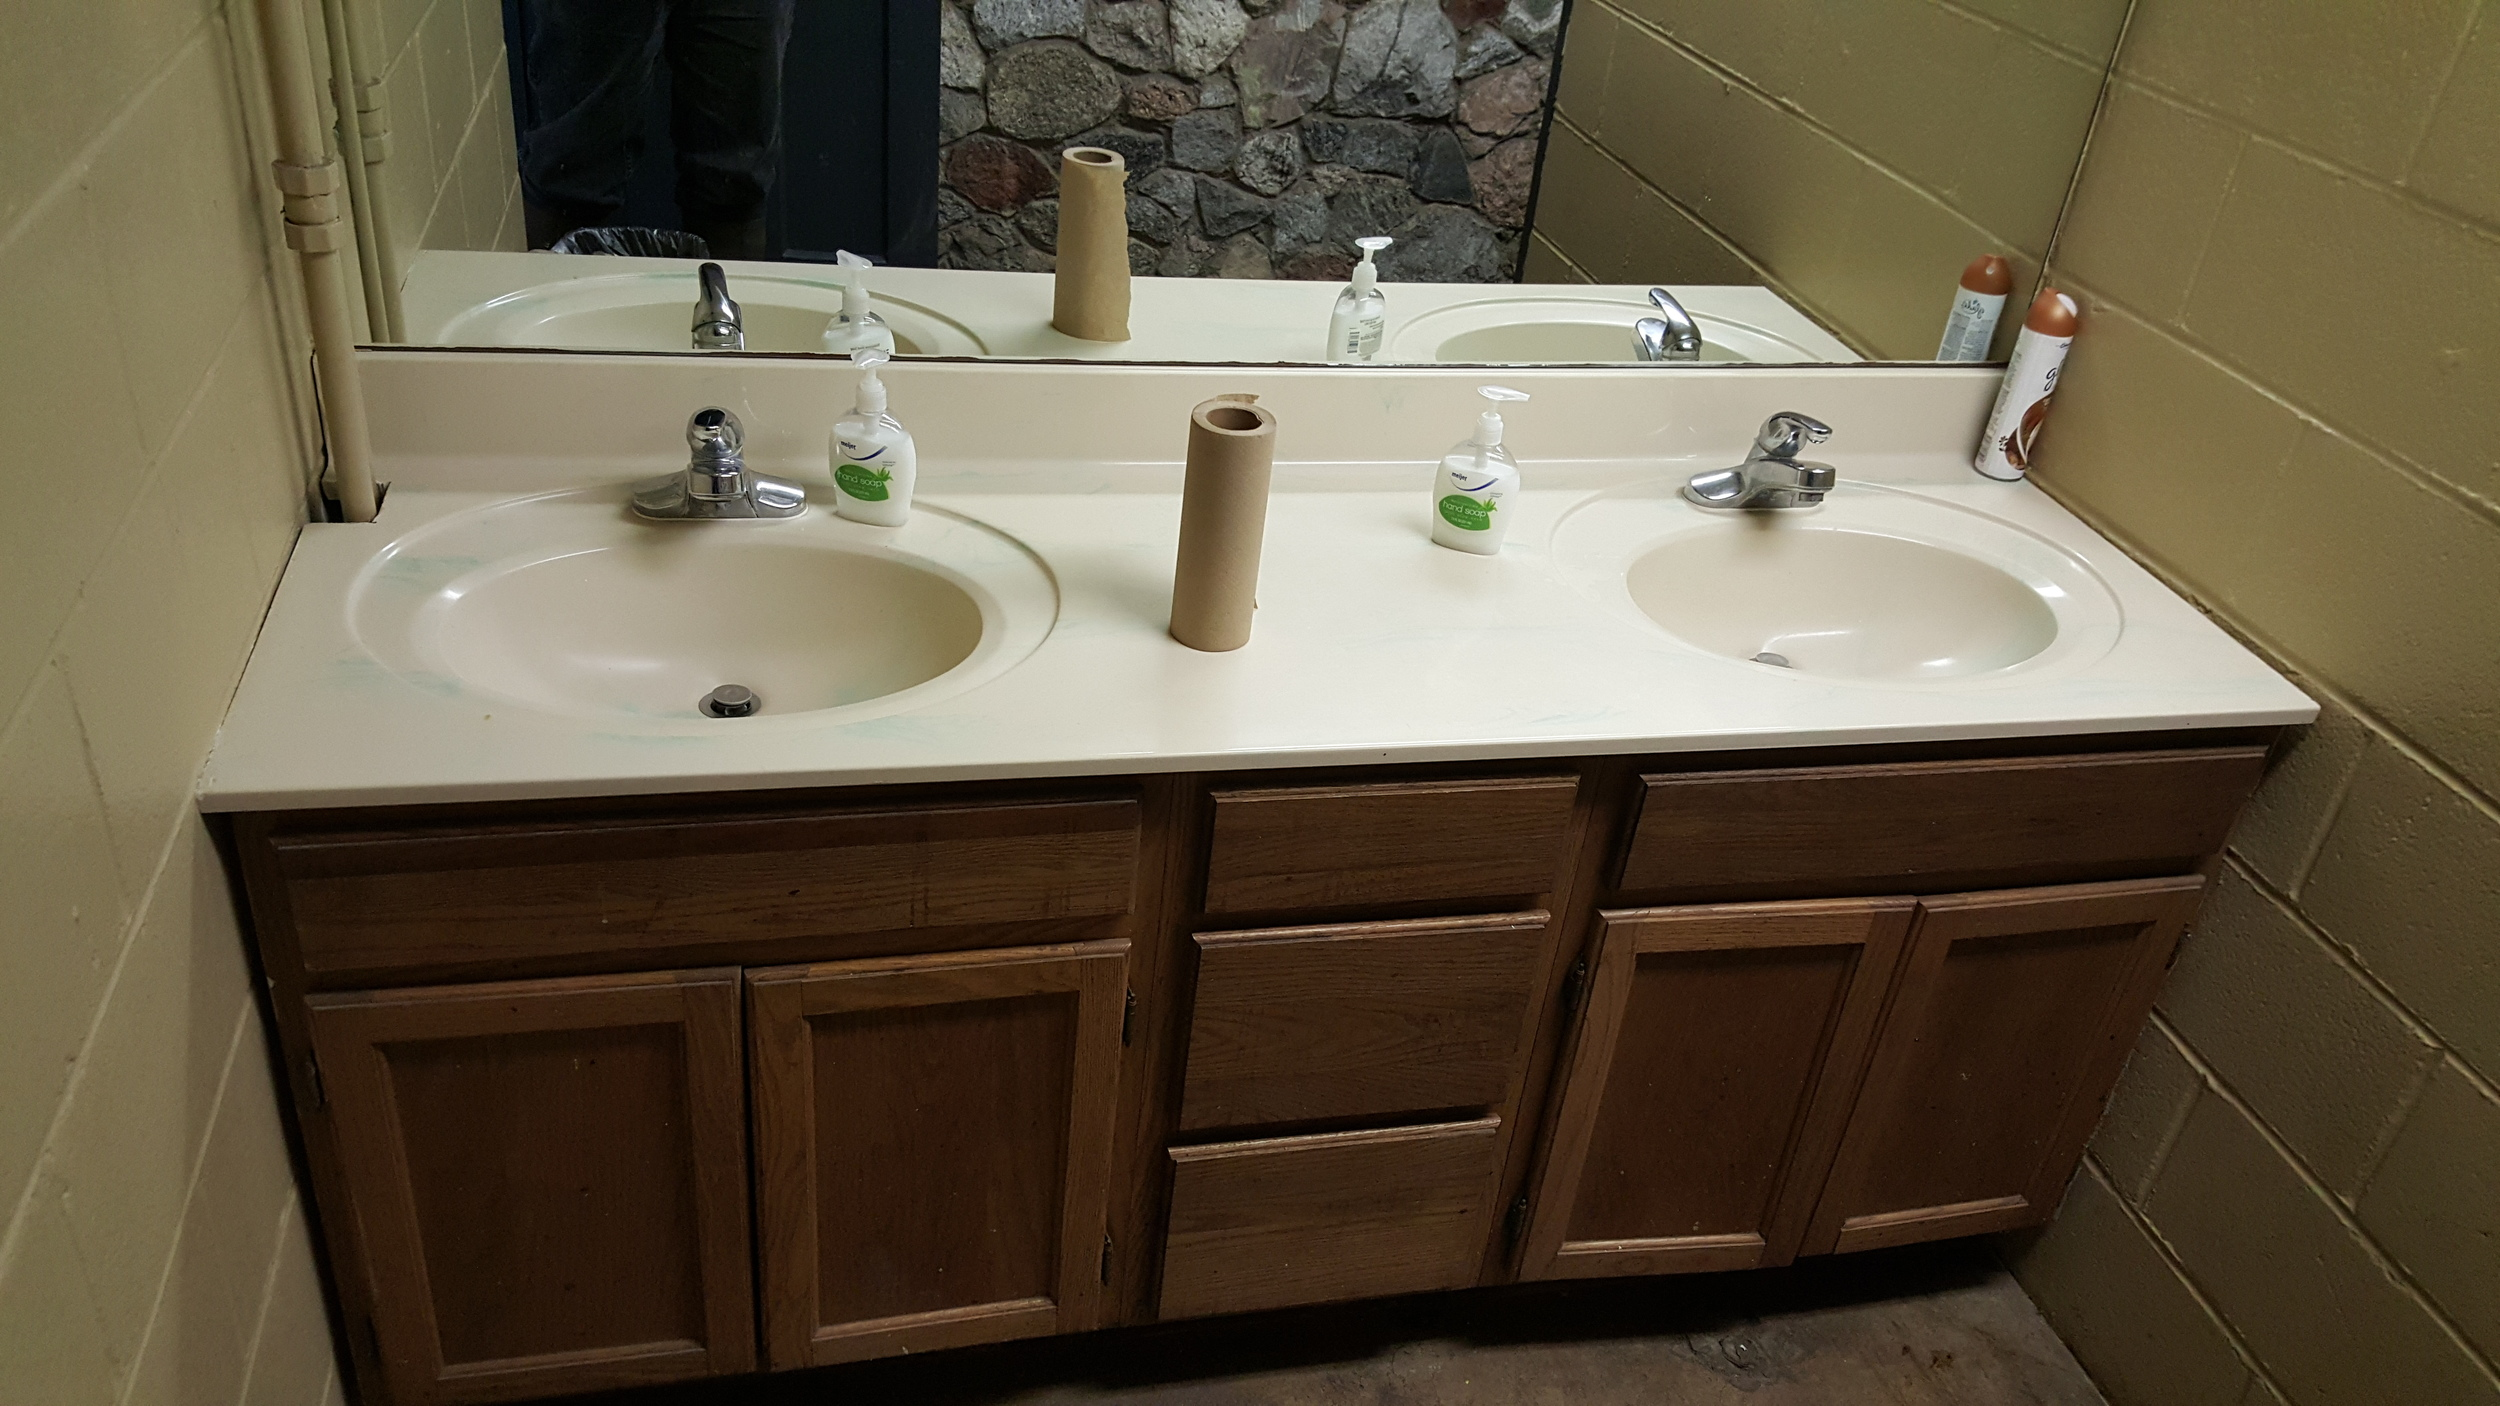 Women's Sink - Before